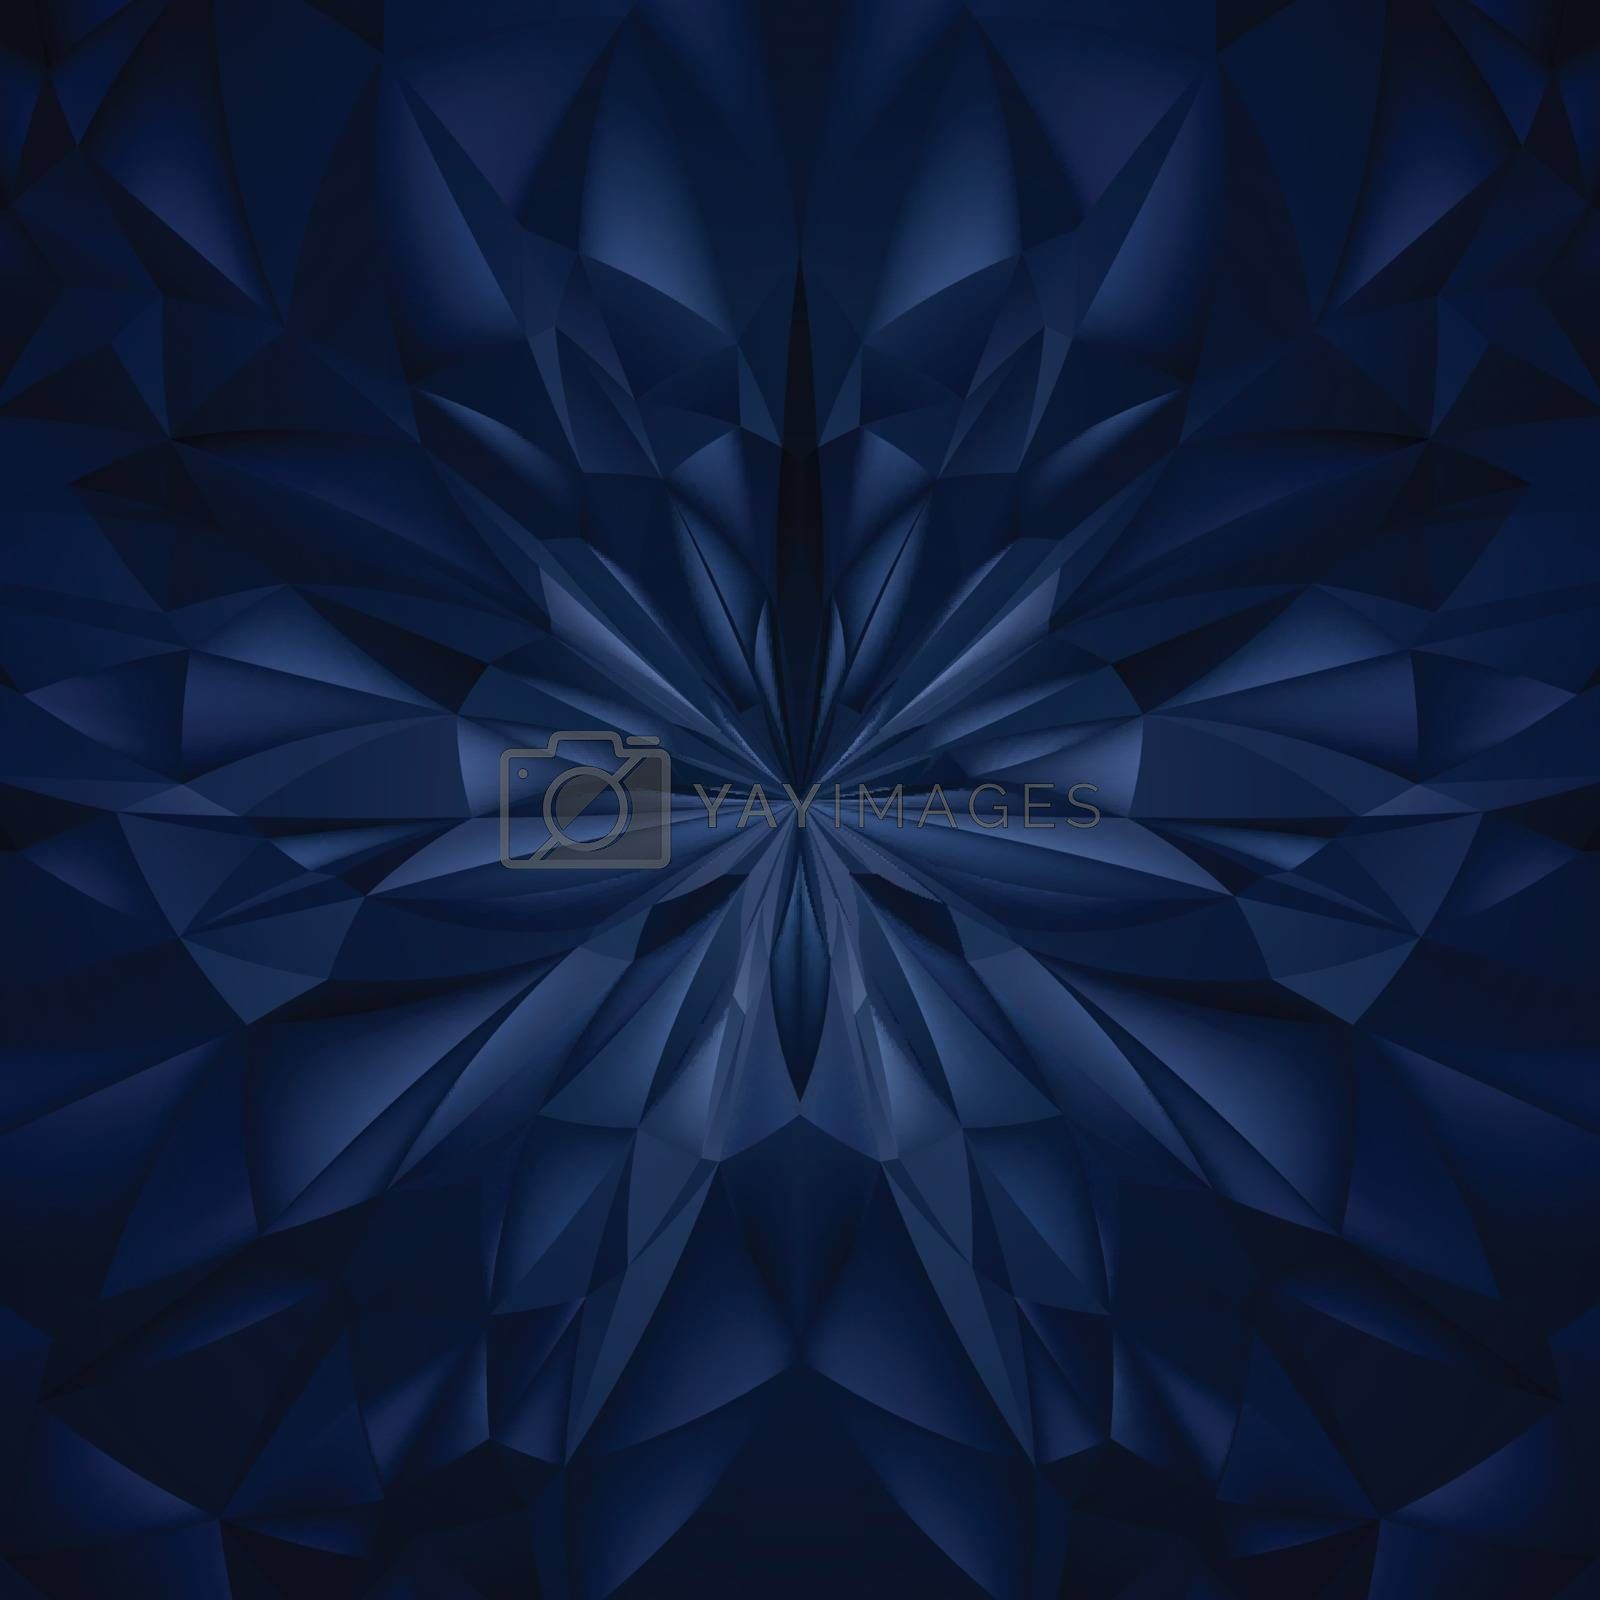 Abstract Blue Composition. Magic Explosion Star with Particles